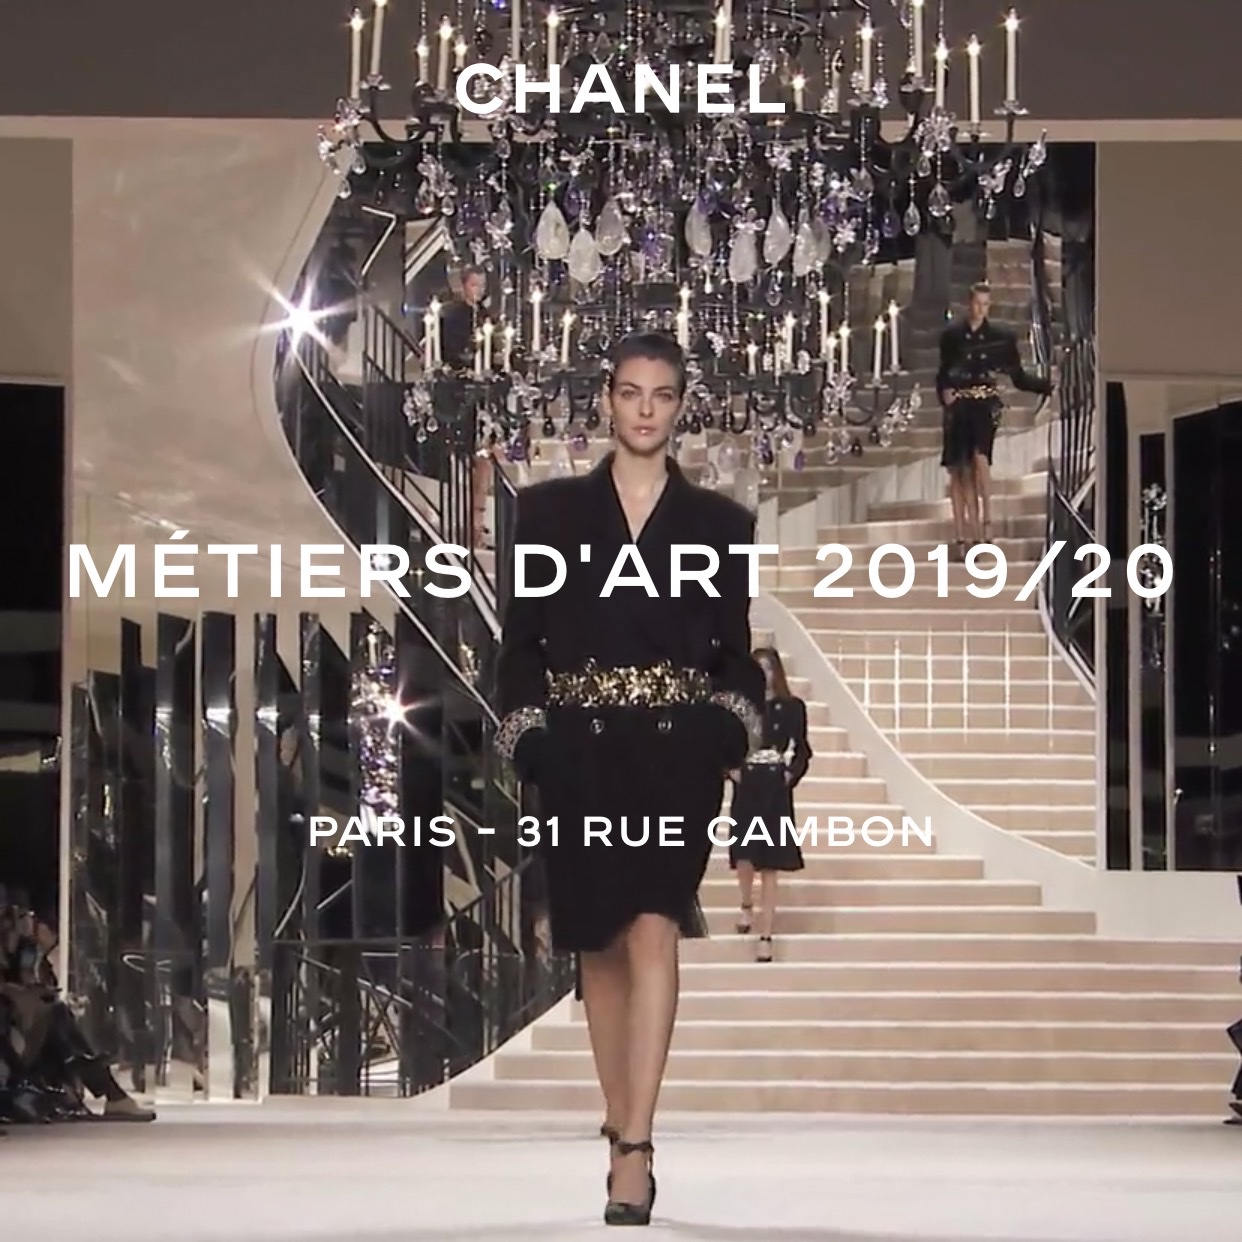 CHANEL MÉTIERS D'ART 2019/20 Show PARIS – 31 RUE CAMBON – Backstage